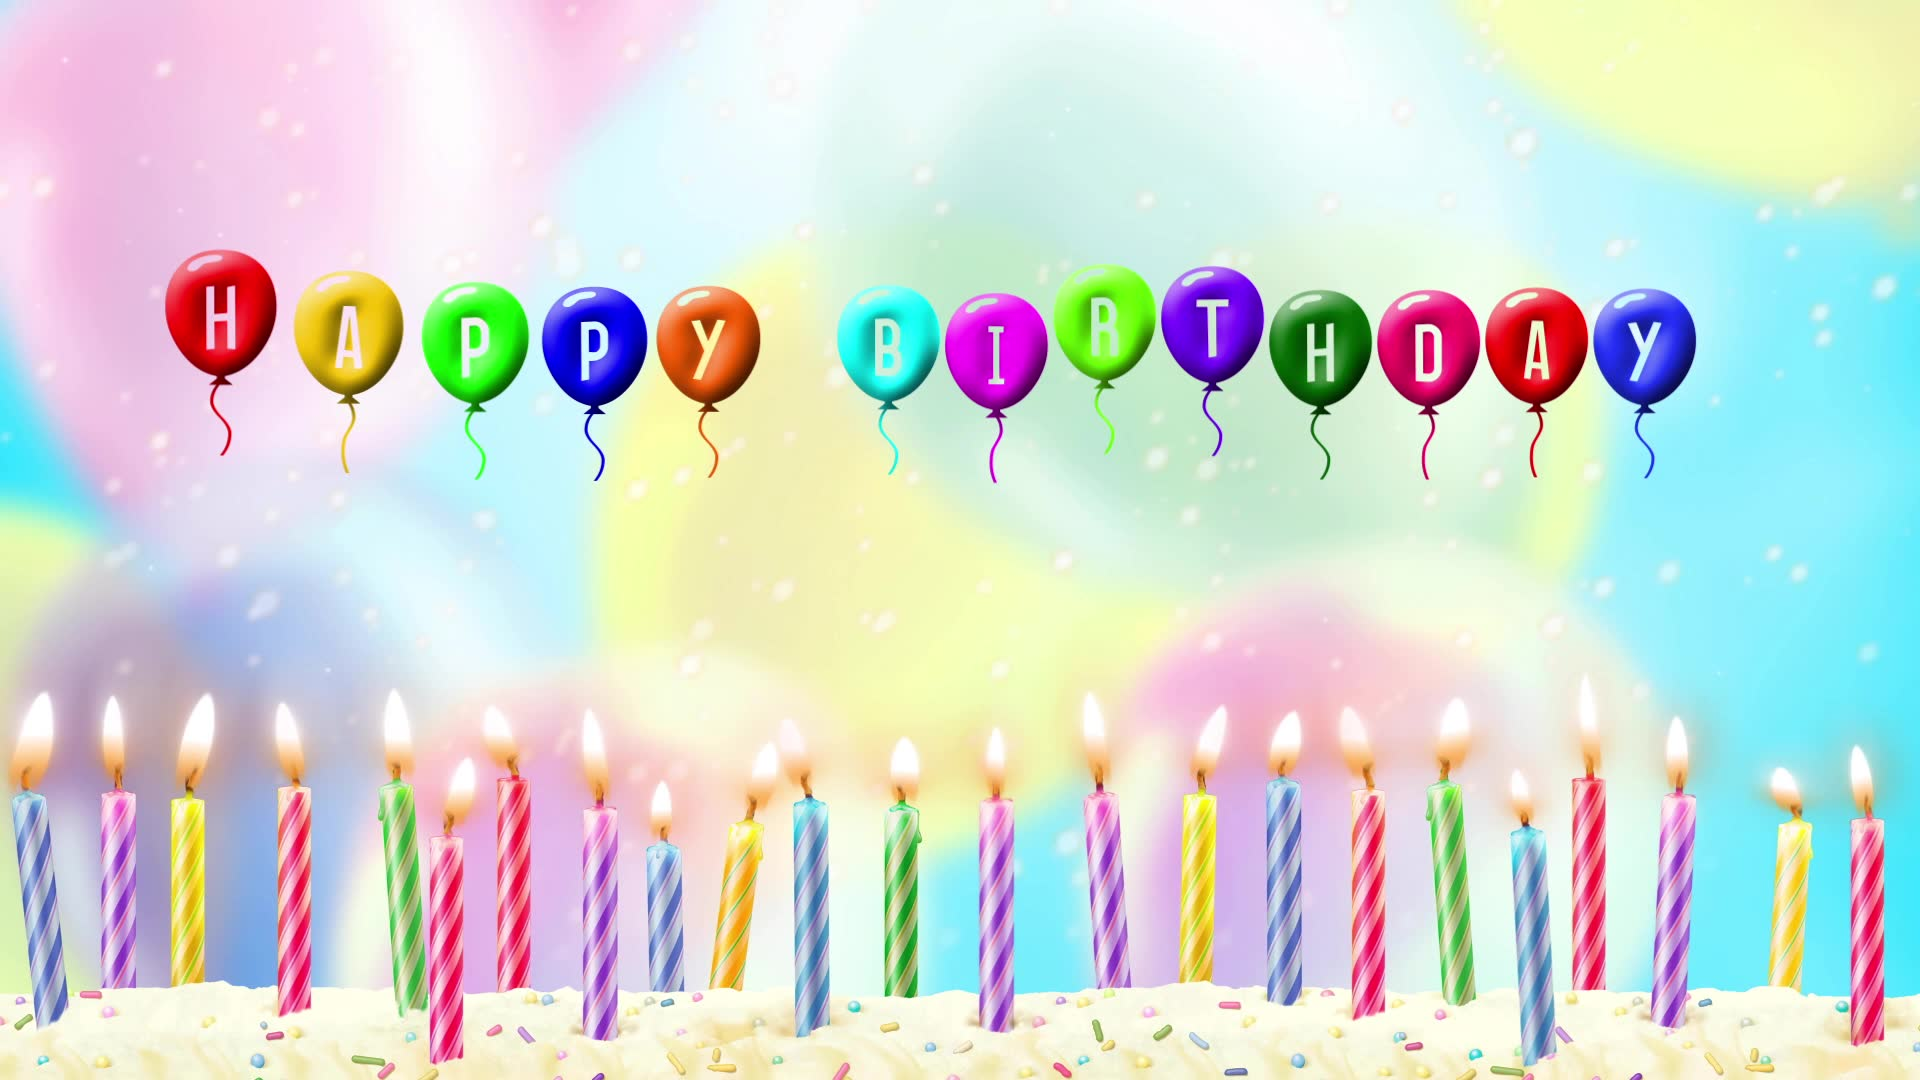 Balloons-birthday-1920%C3%971080-wallpaper-wp3802772